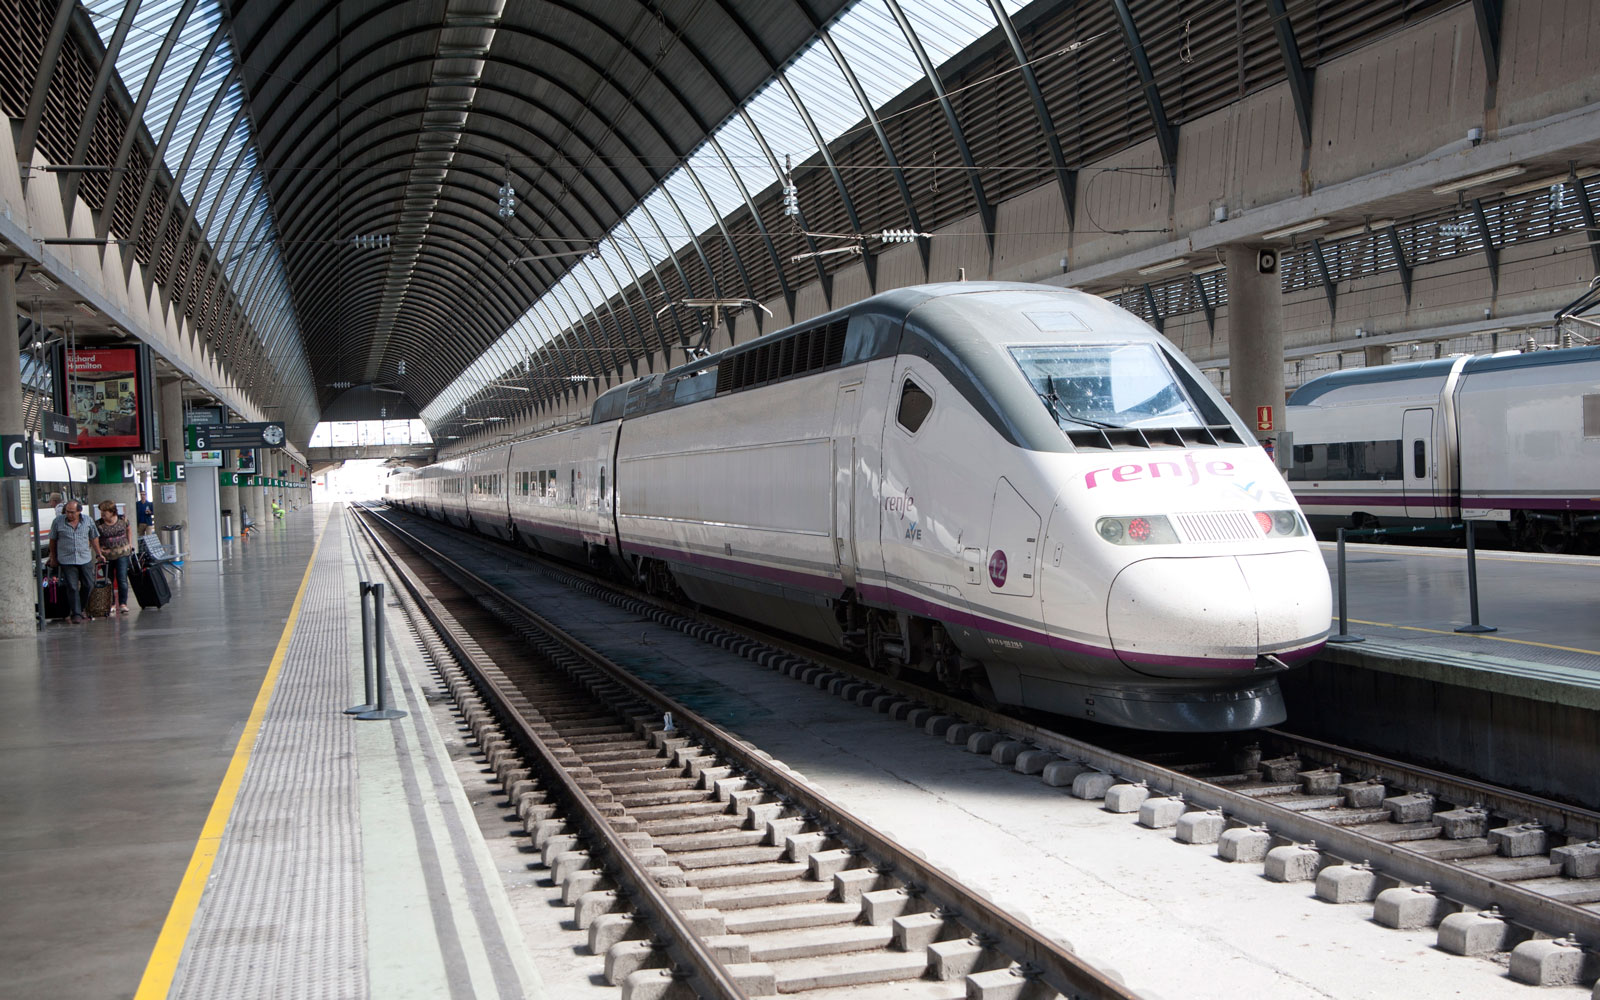 Spain Is Adding Free Wi-Fi on Its High-speed Trains